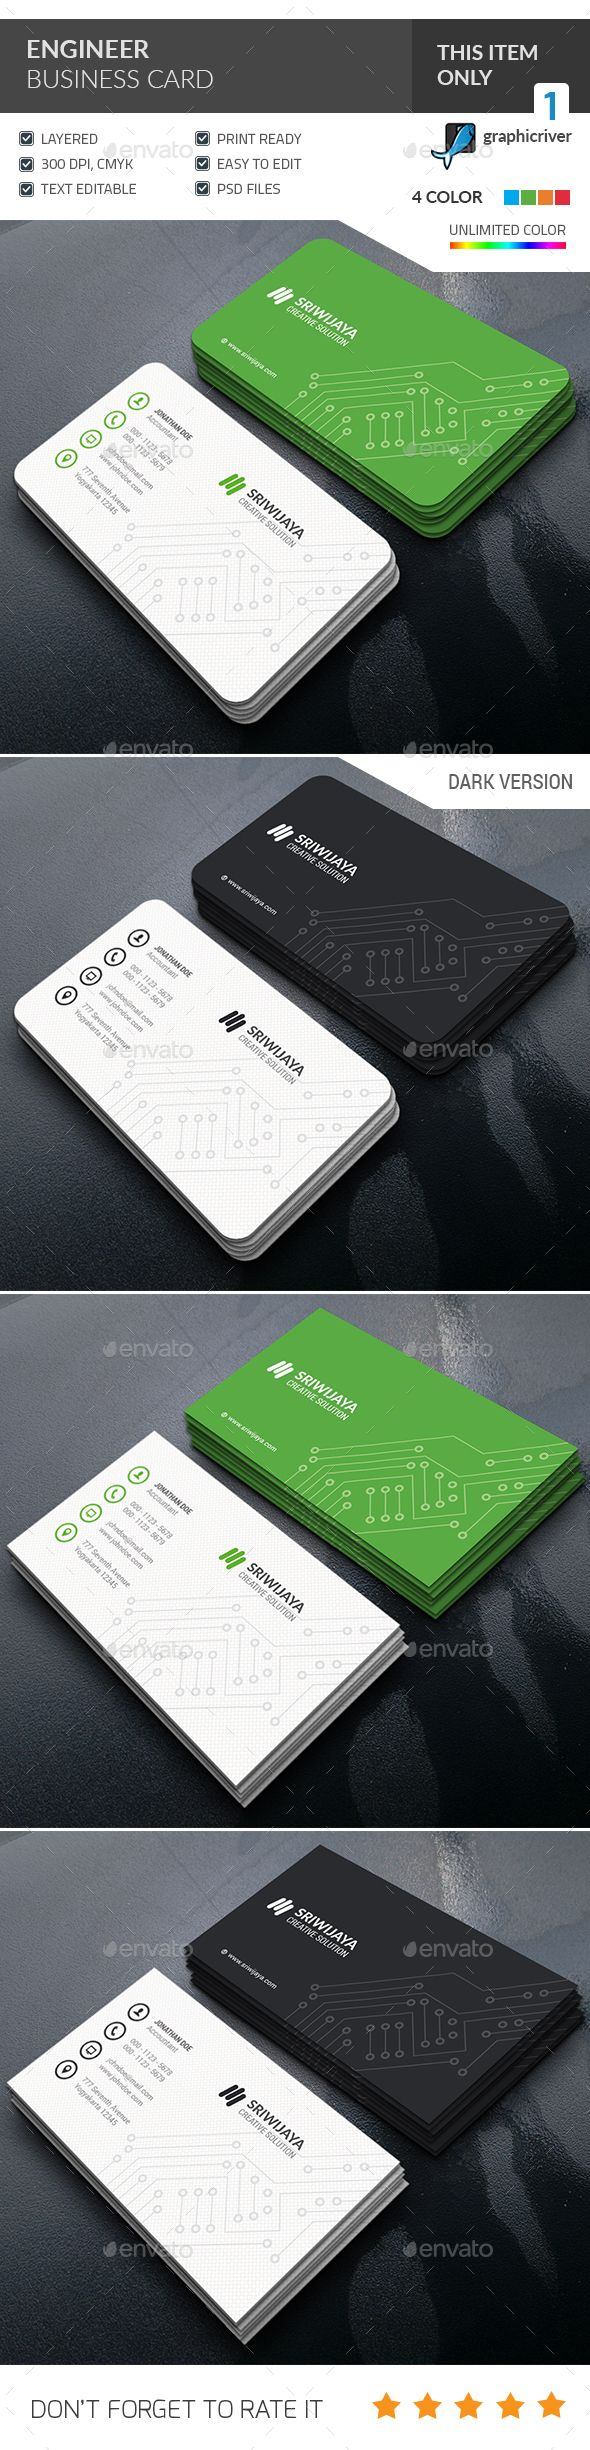 Engineer Business Card — Photoshop PSD #company #computer • Available here → https://graphicriver.net/item/engineer-business-card-/14237360?ref=pxcr